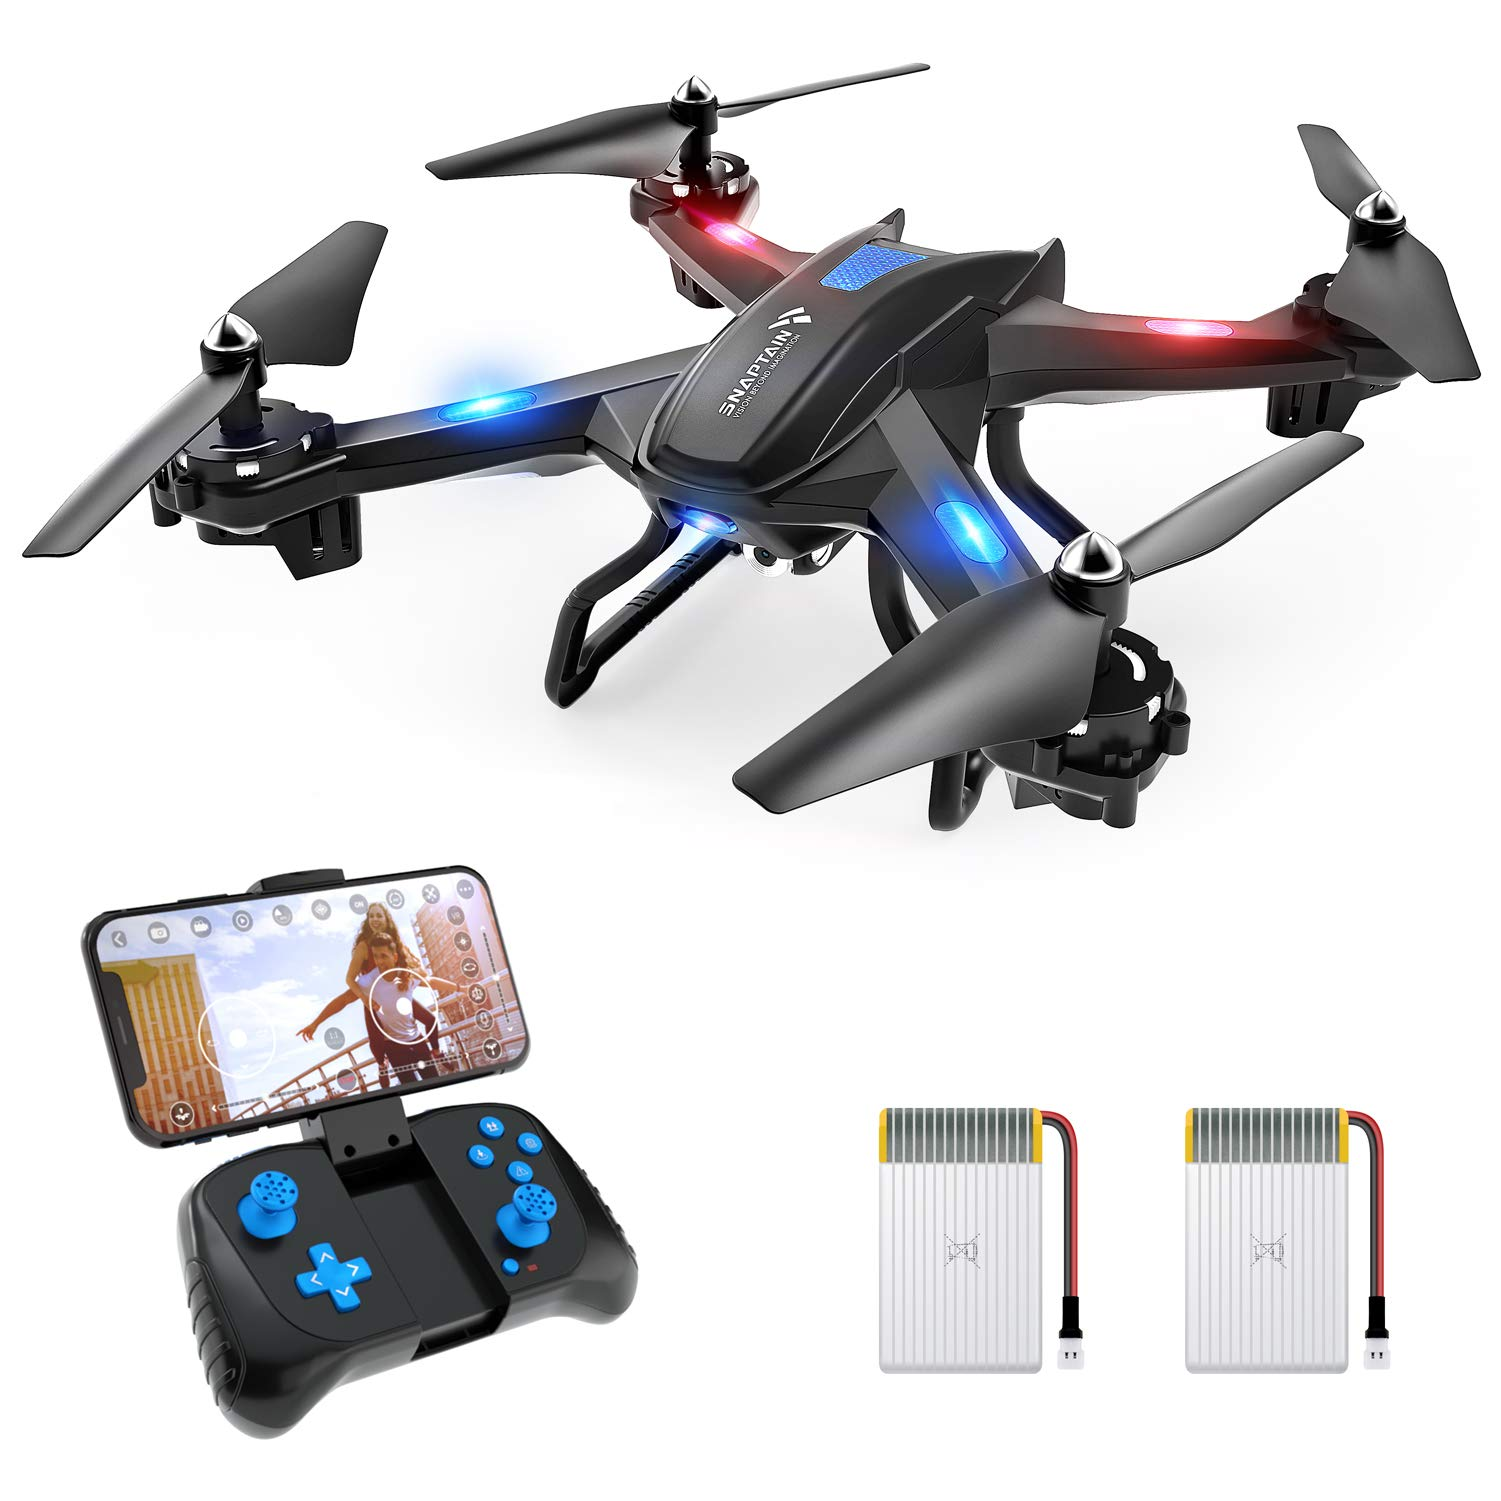 SNAPTAIN Wide Angle Quadcopter Altitude Compatible